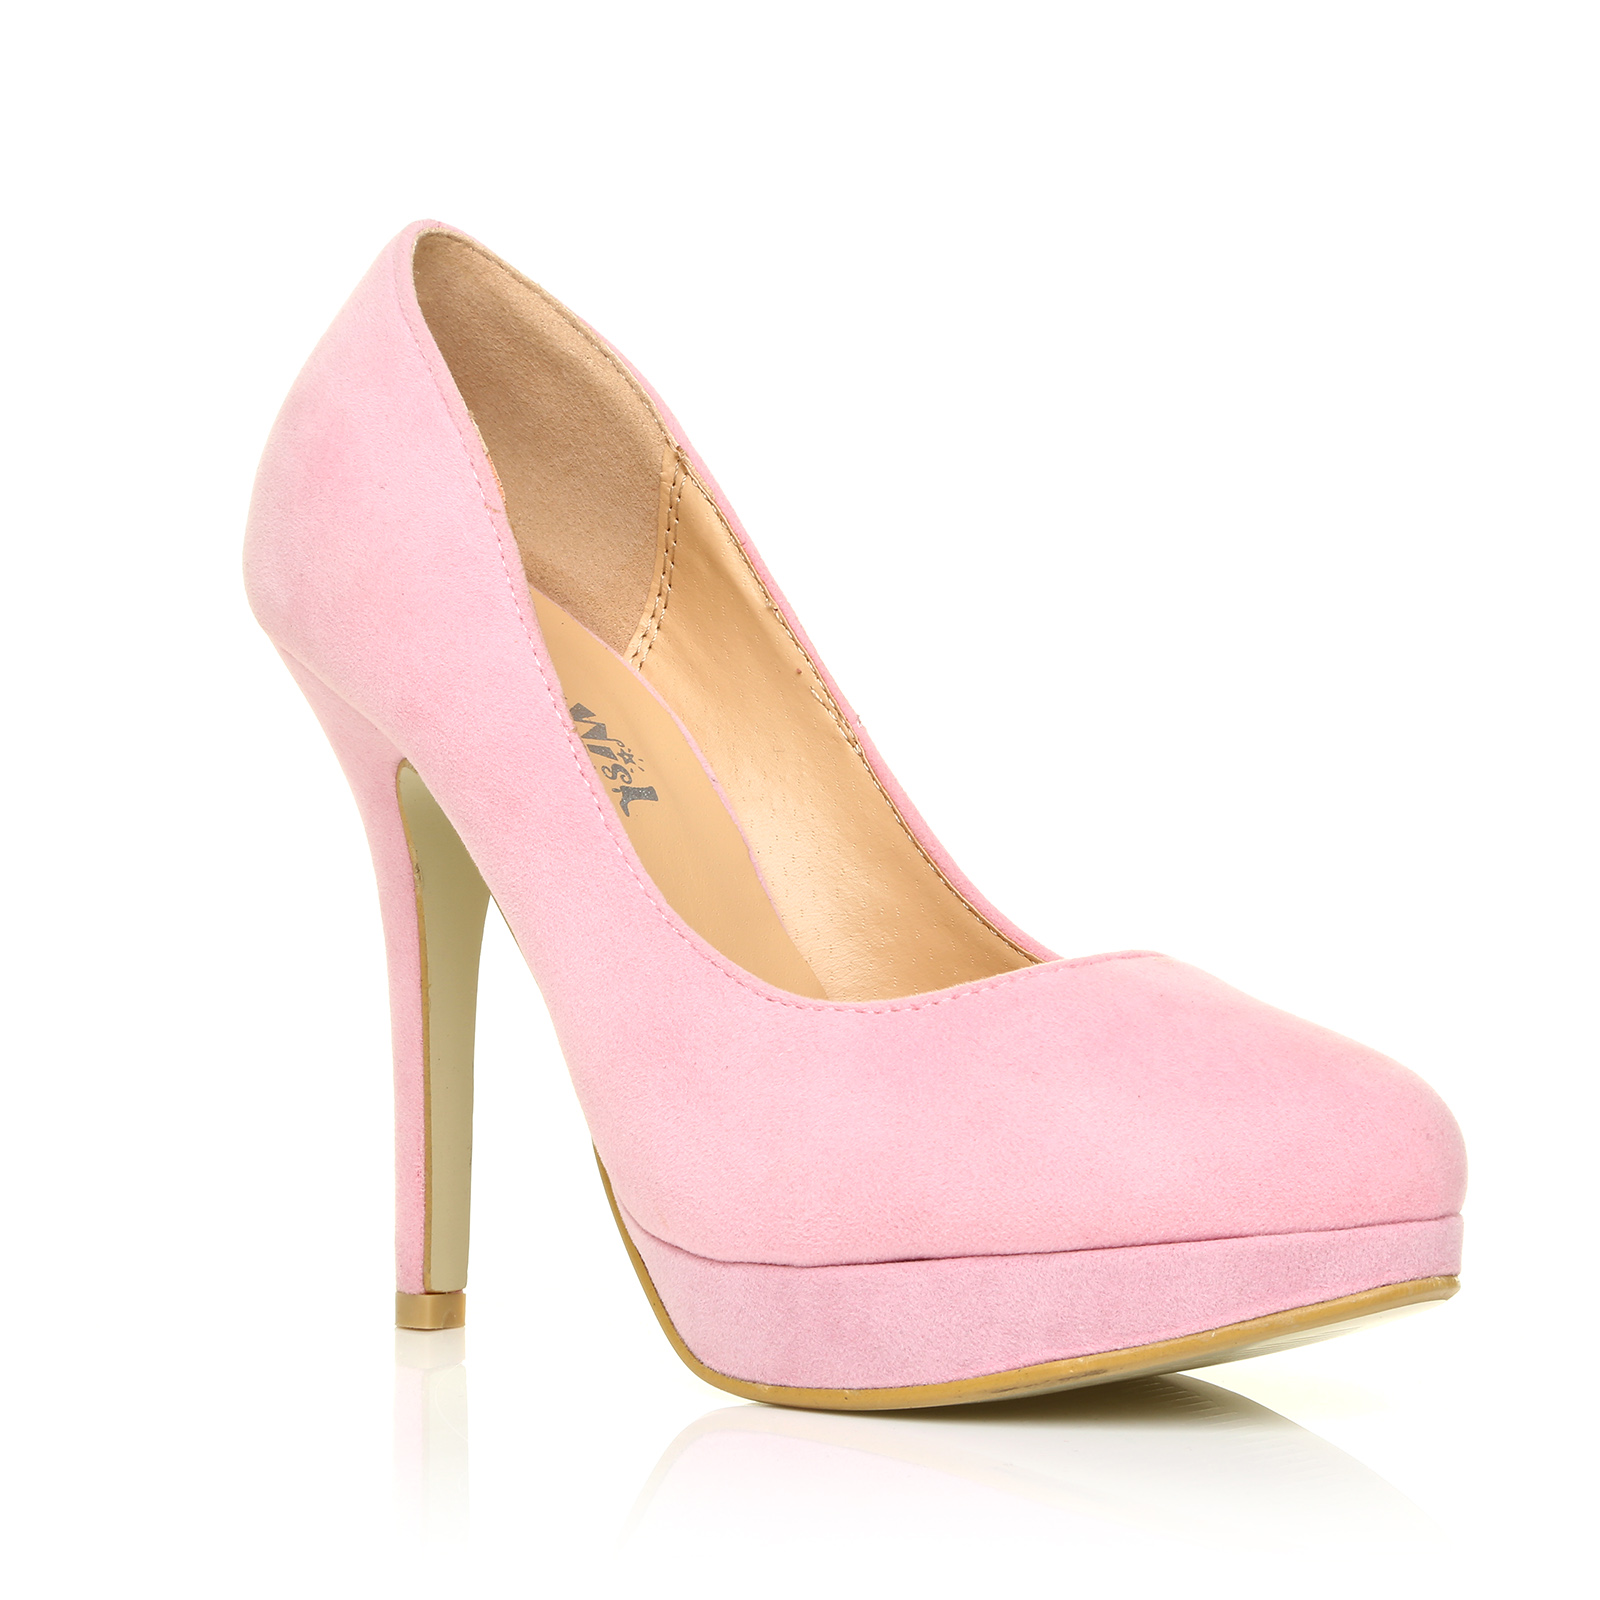 5c23320ce3f Eve Baby Pink Faux Suede Stiletto High Heel Platform Court Shoes UK ...